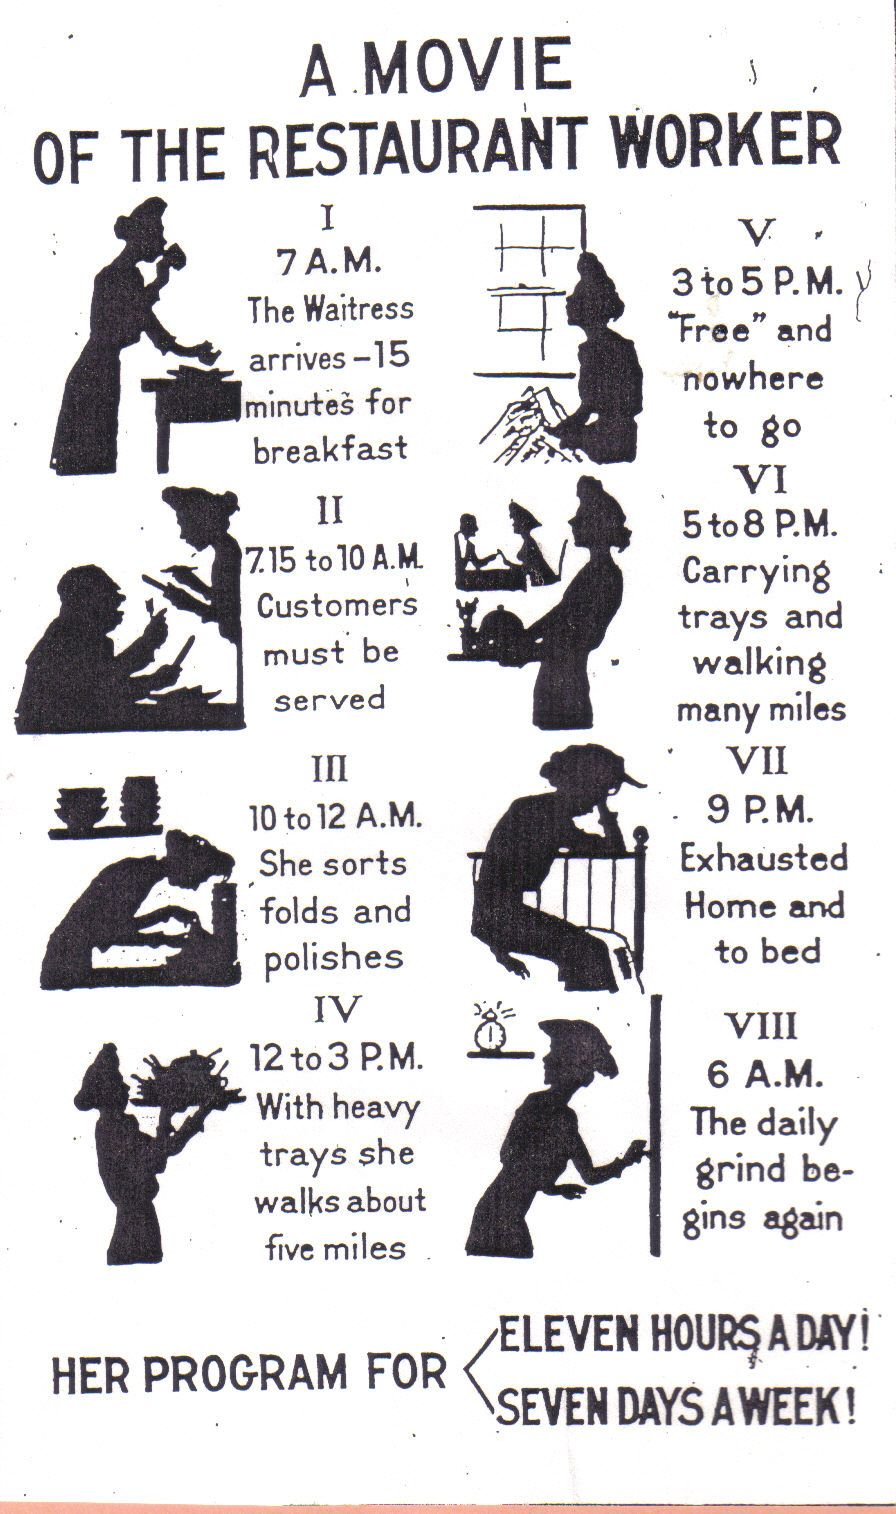 How To Write An Essay For High School Students It Details The Working Day Of A Waitress During The Progressive Era I Find  This Interesting Because It Shows How Our Perception Of  Short English Essays also Essays On Health This Is What We Would Today Call An Infographic It Details The  How To Write An Essay For High School